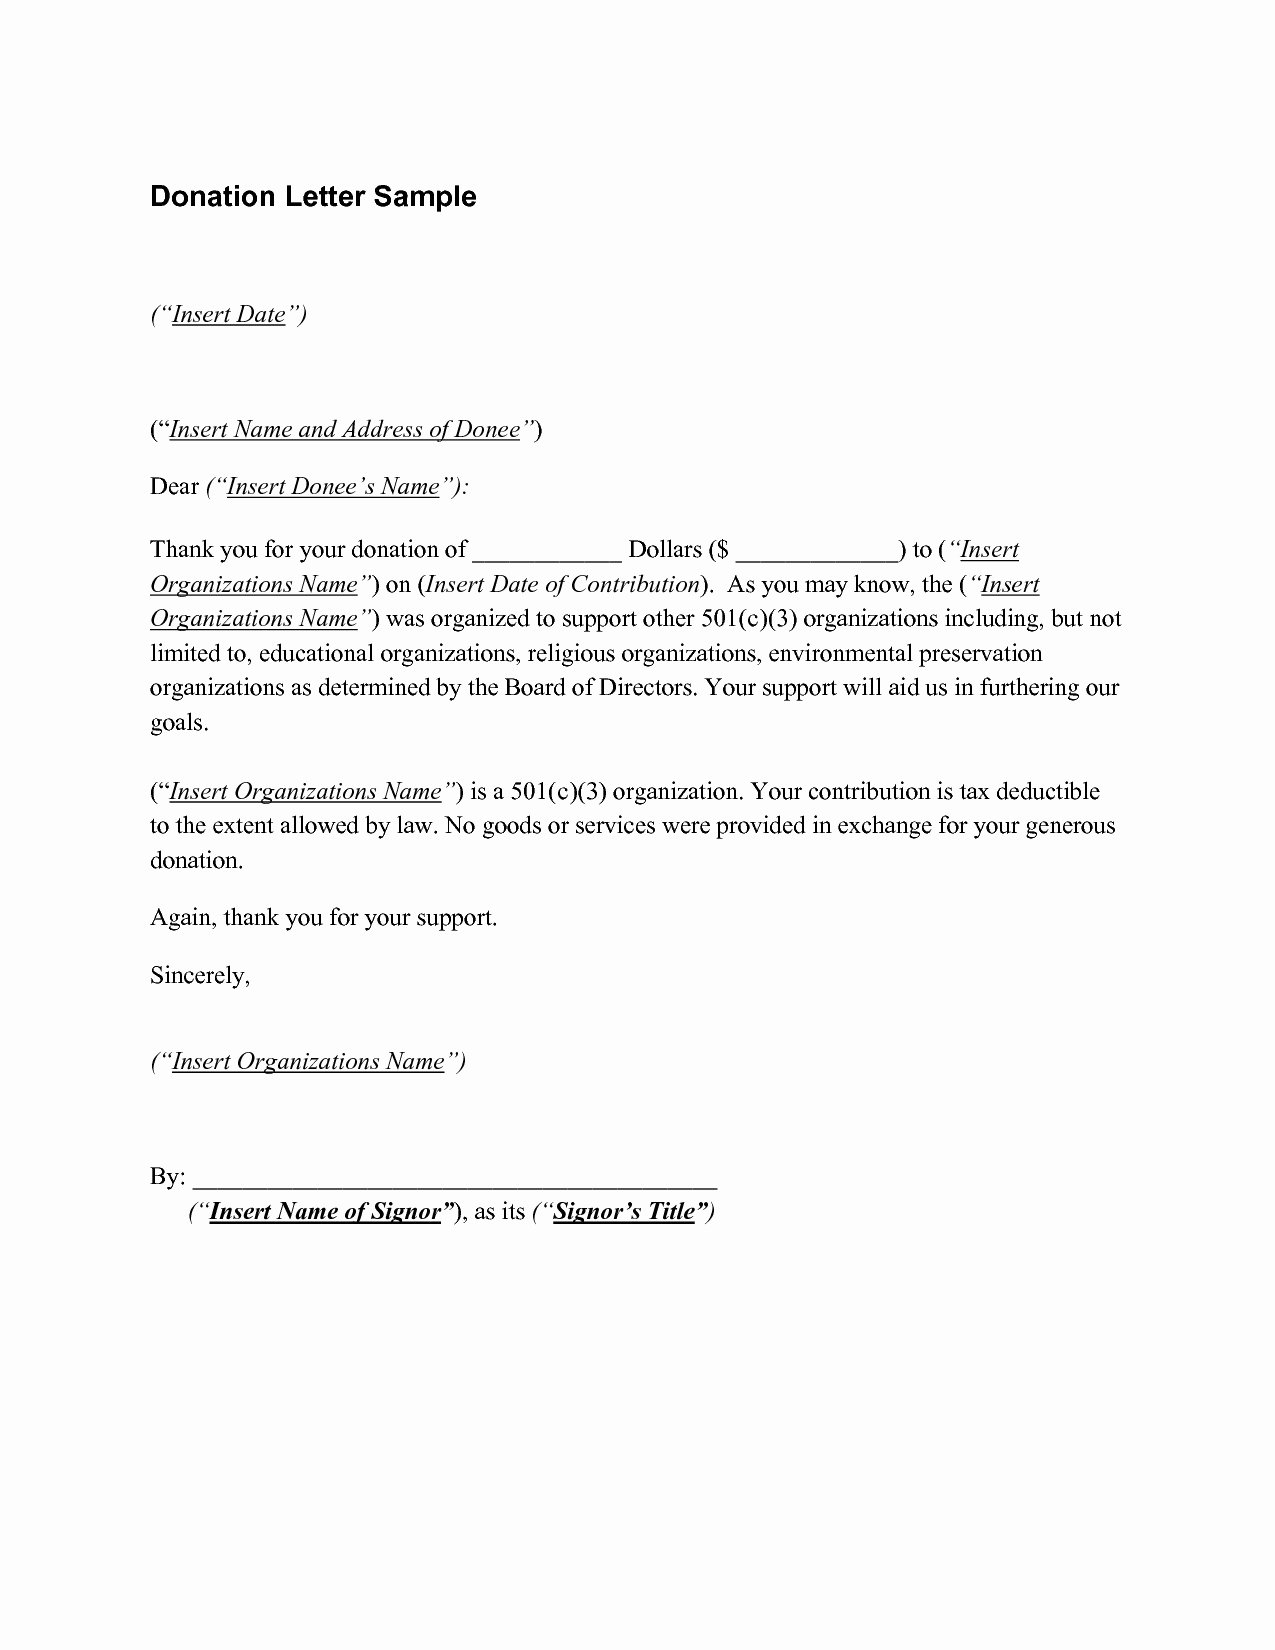 Mission Trip Donation Letter Template Awesome Sample Letter Requesting Donations for A Mission Trip